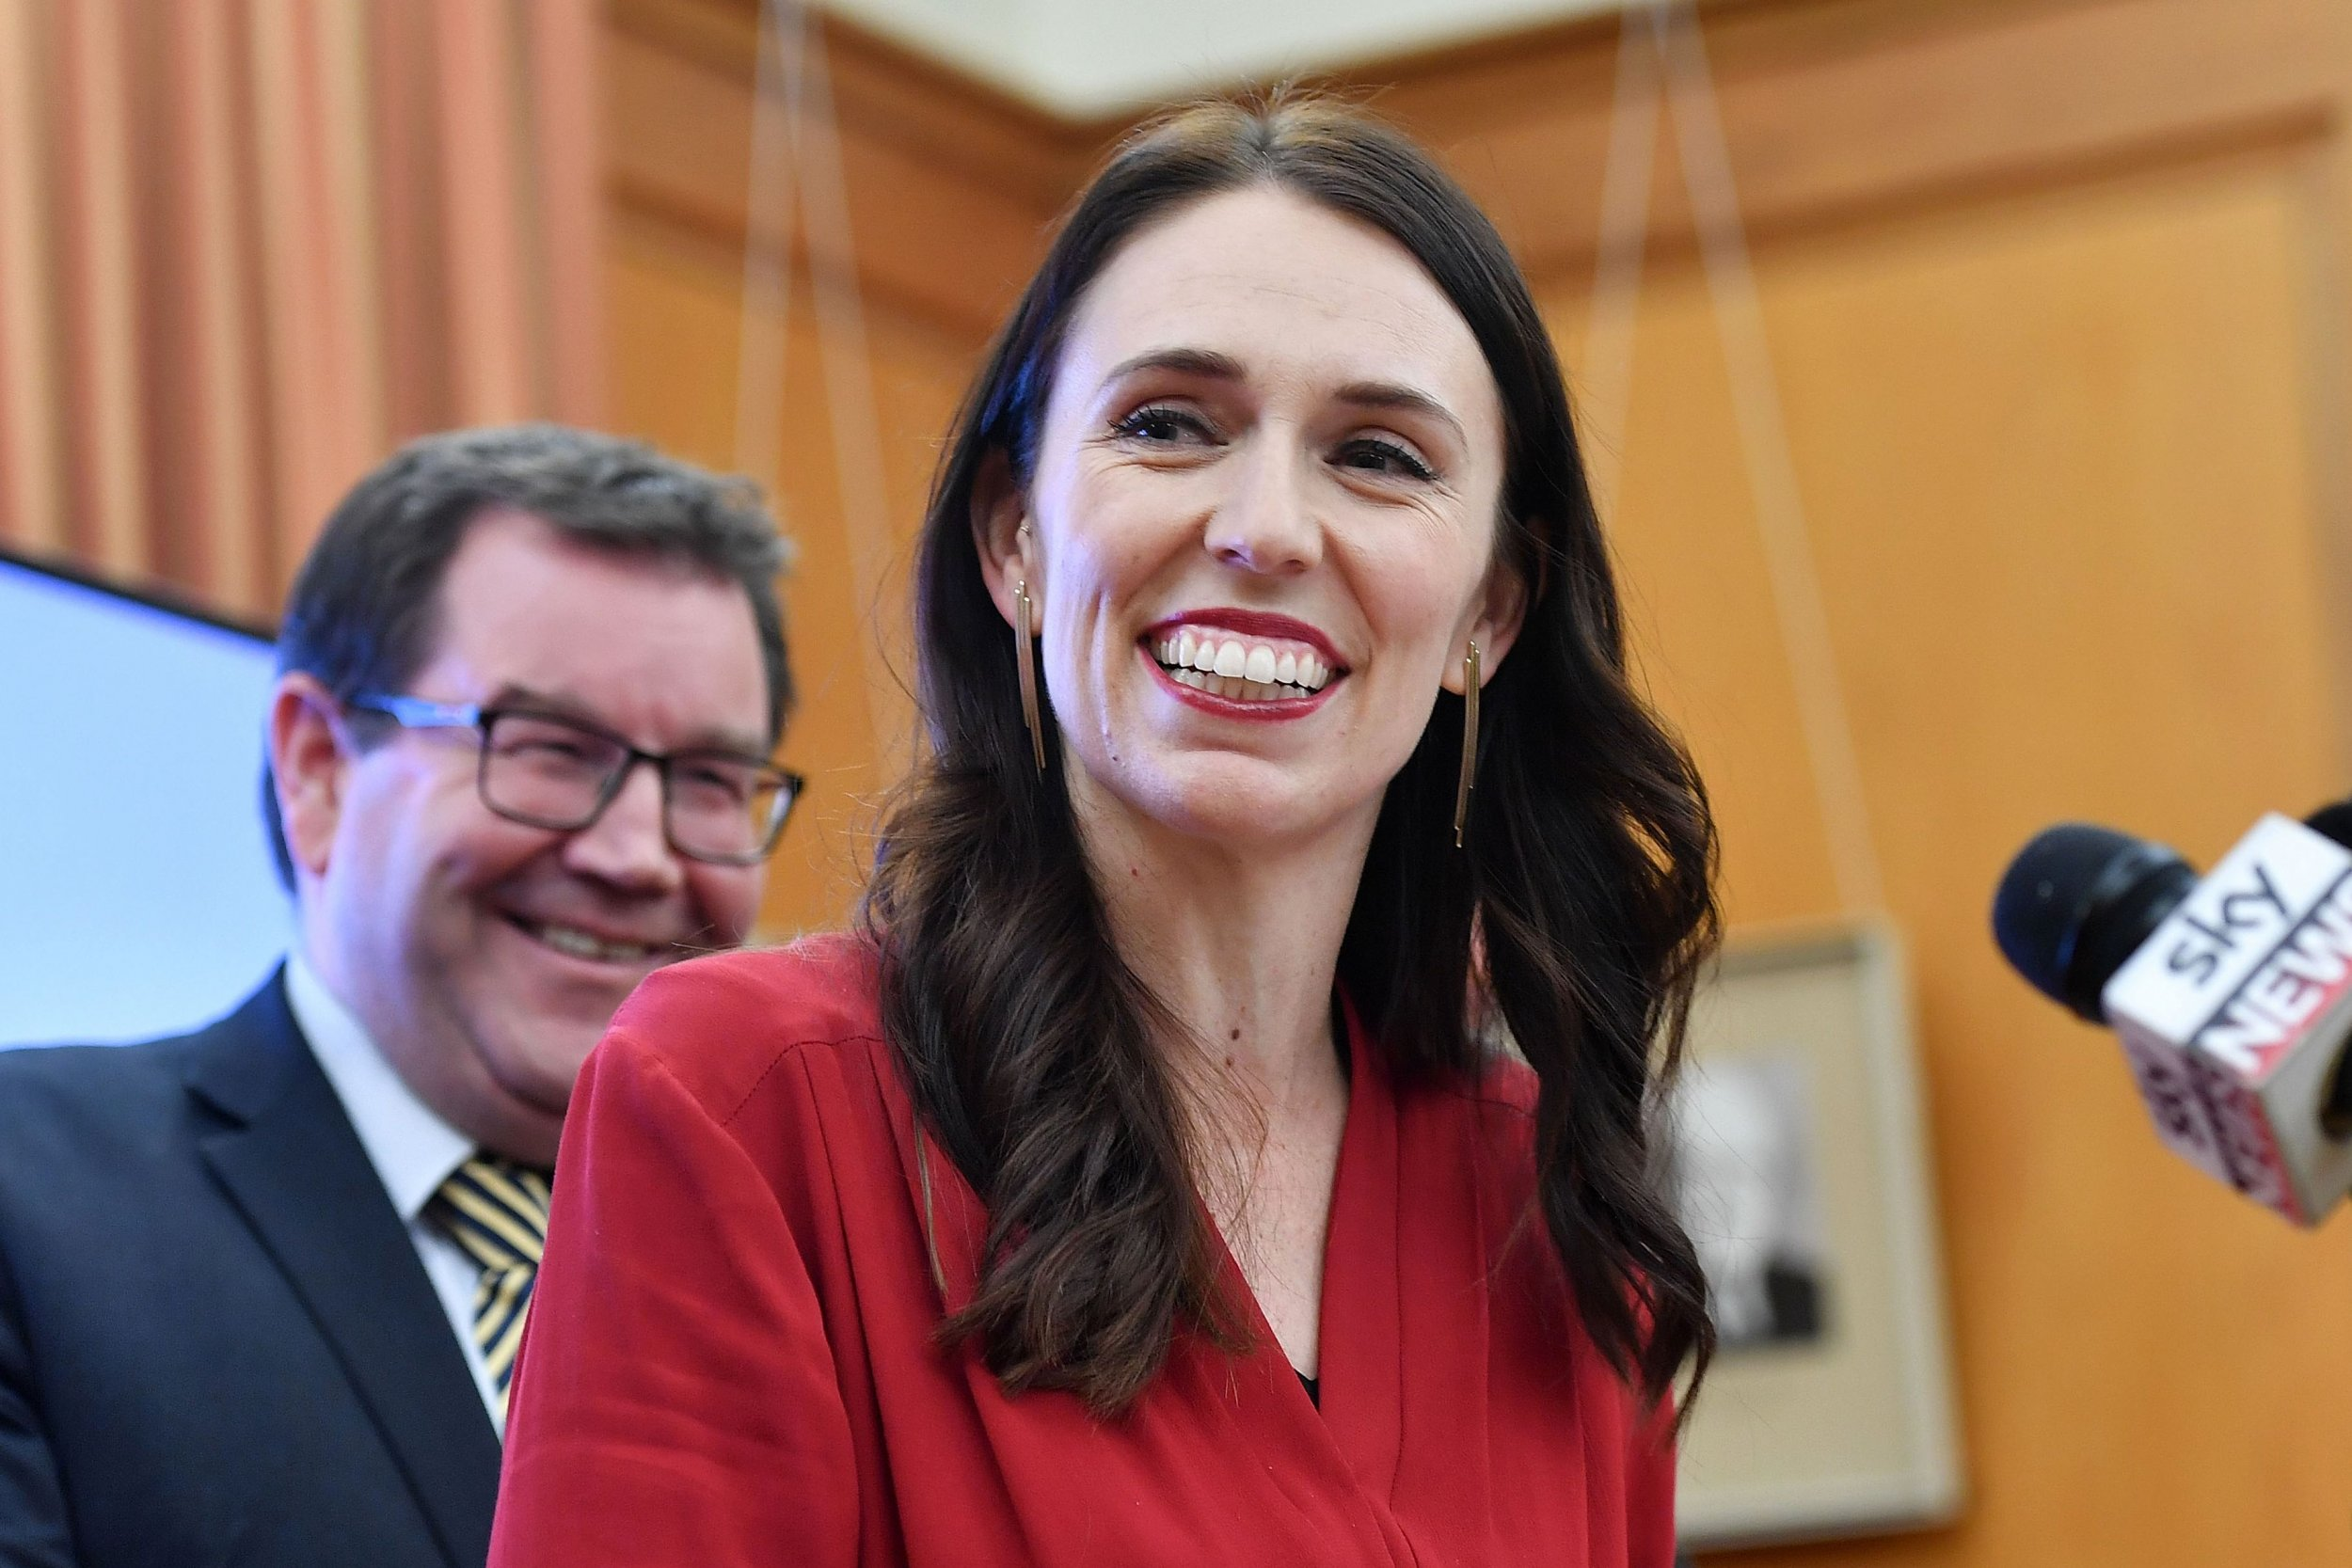 Jacinda Ardern Gallery: Who Is Jacinda Ardern? The New 'Trudeau-Like' Leader Of